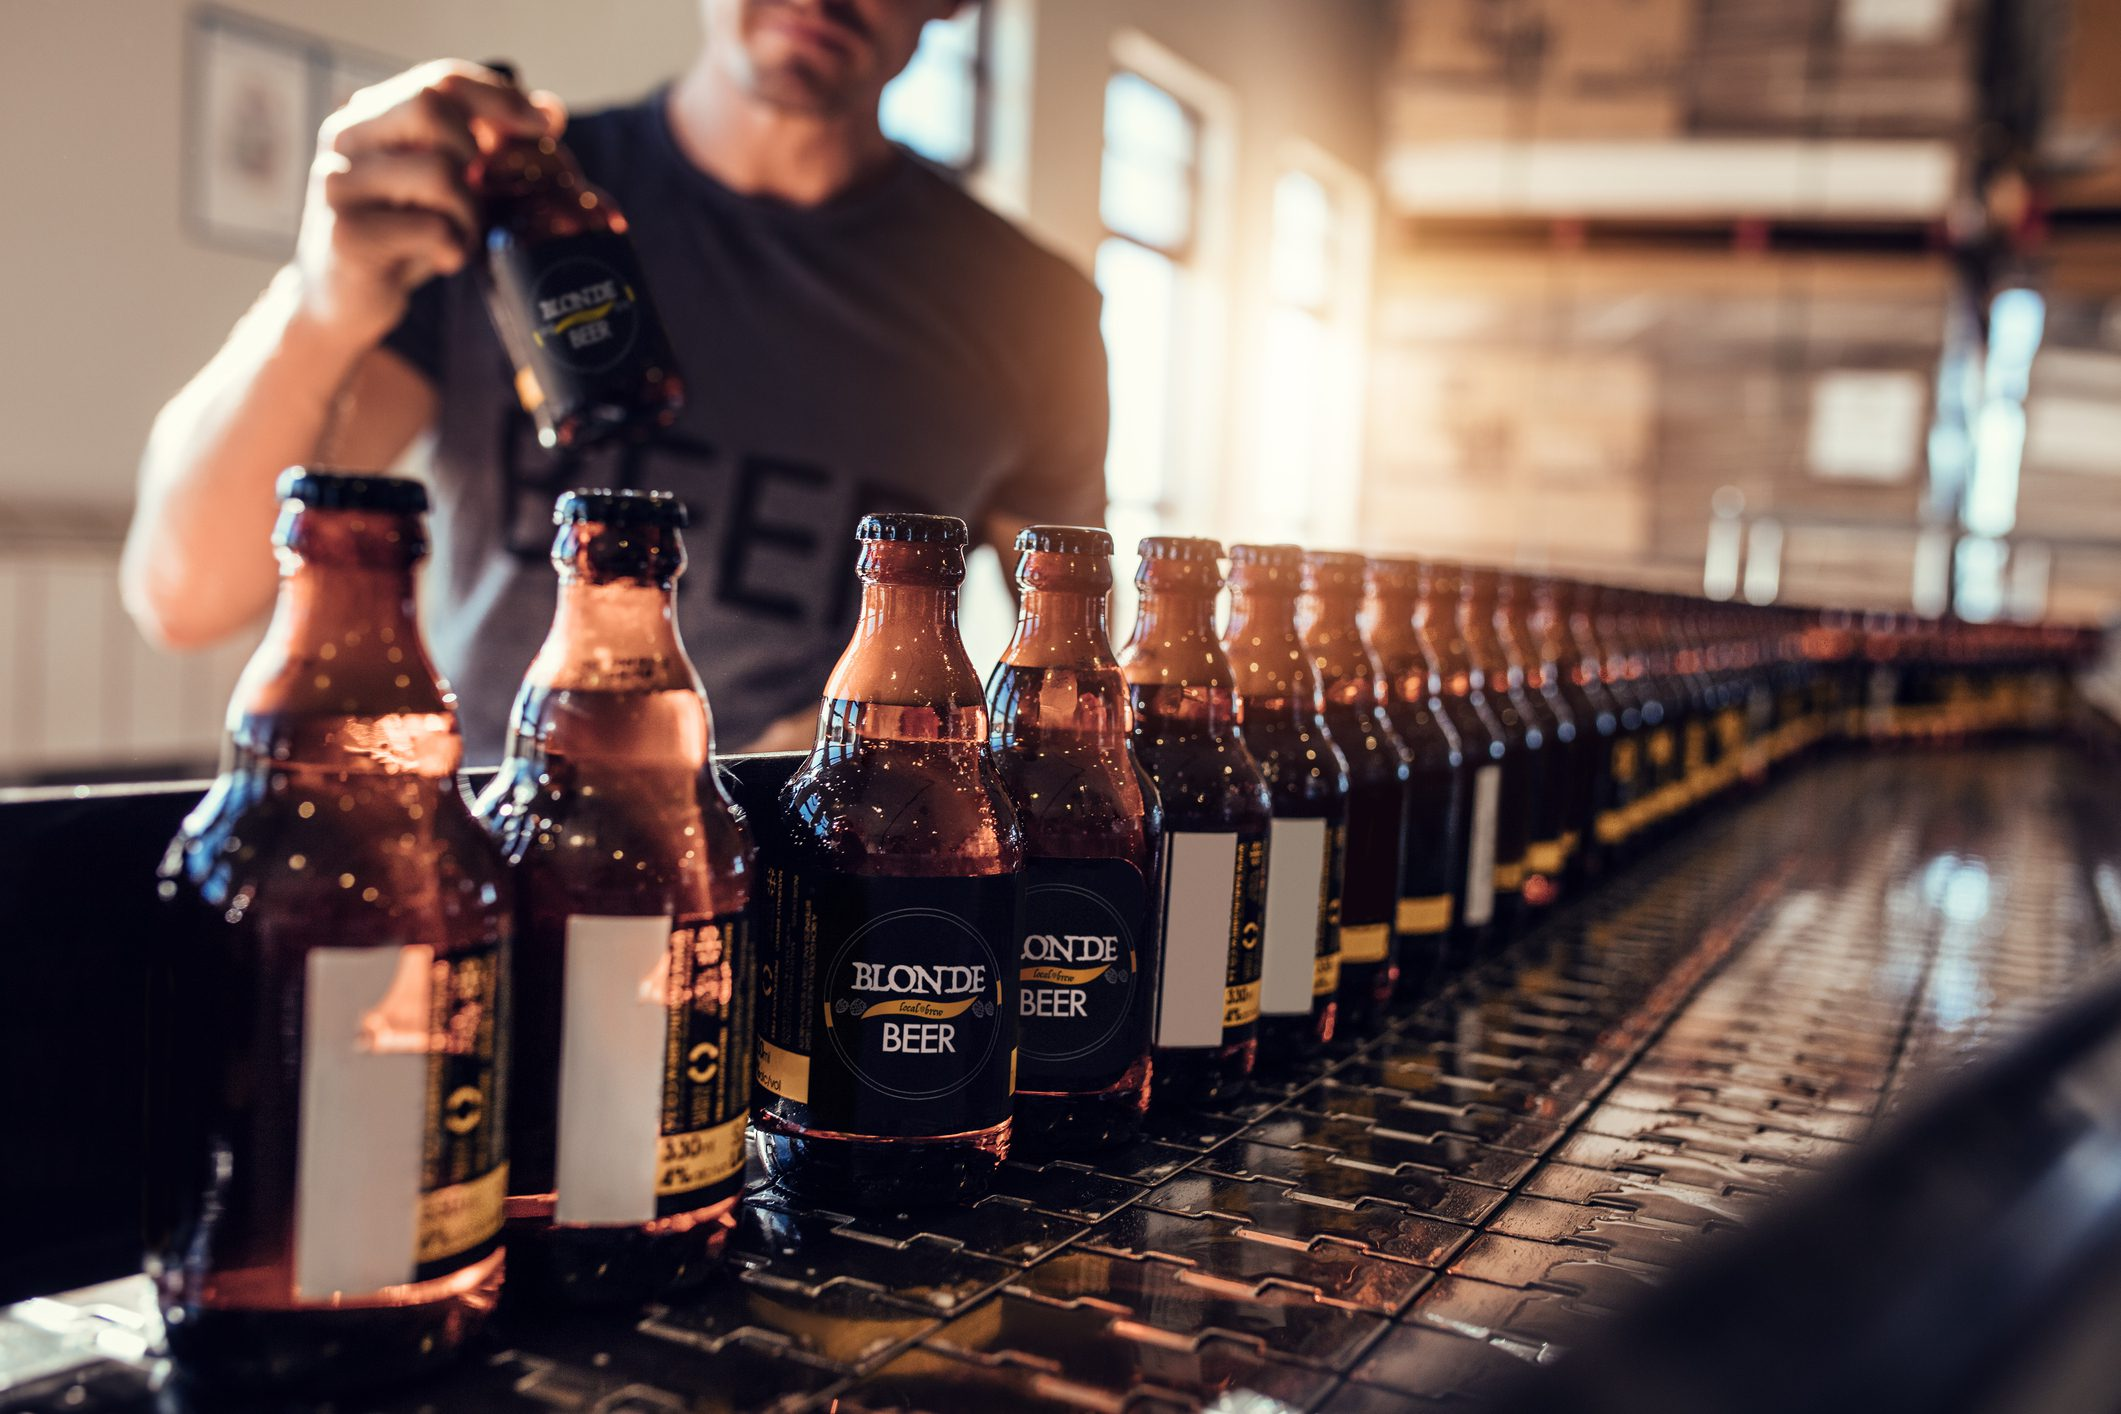 Beers lined up at the bar in bottle